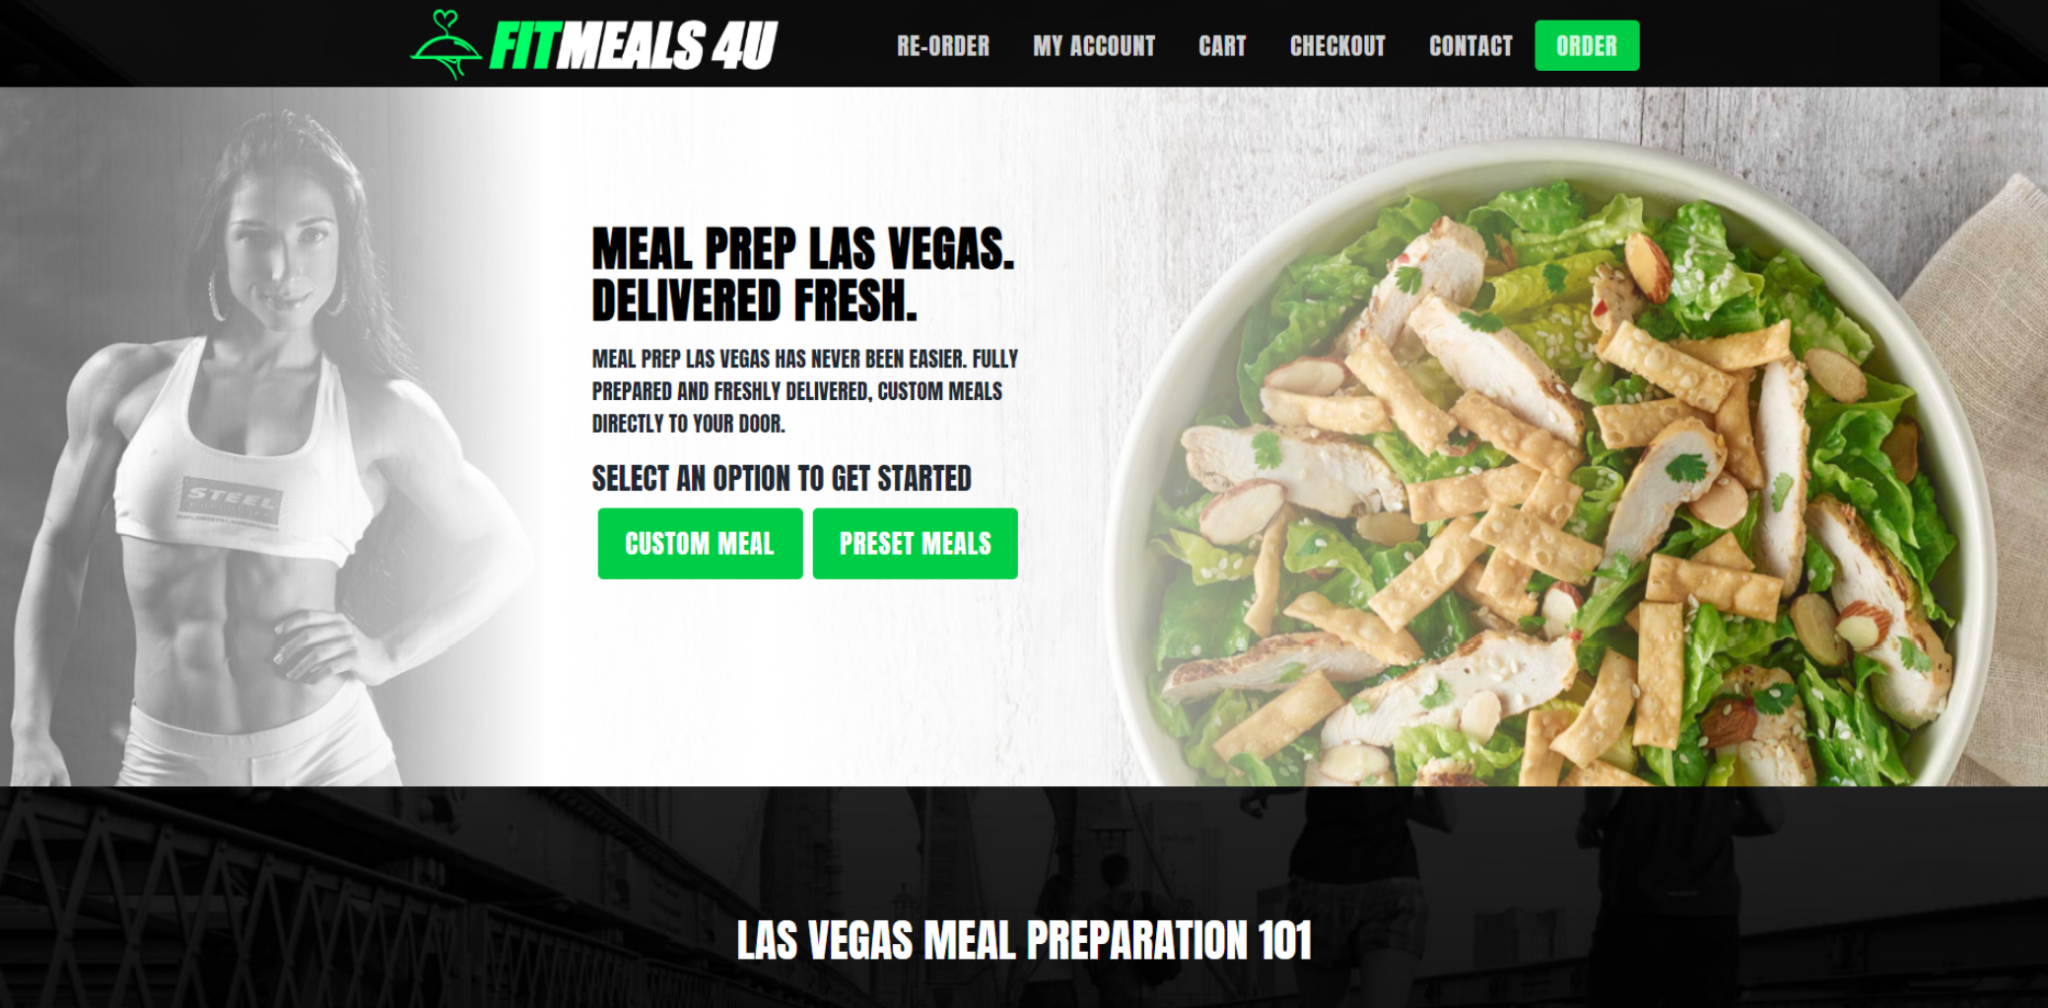 fit meals 4u - web design example by 702 pros las vegas